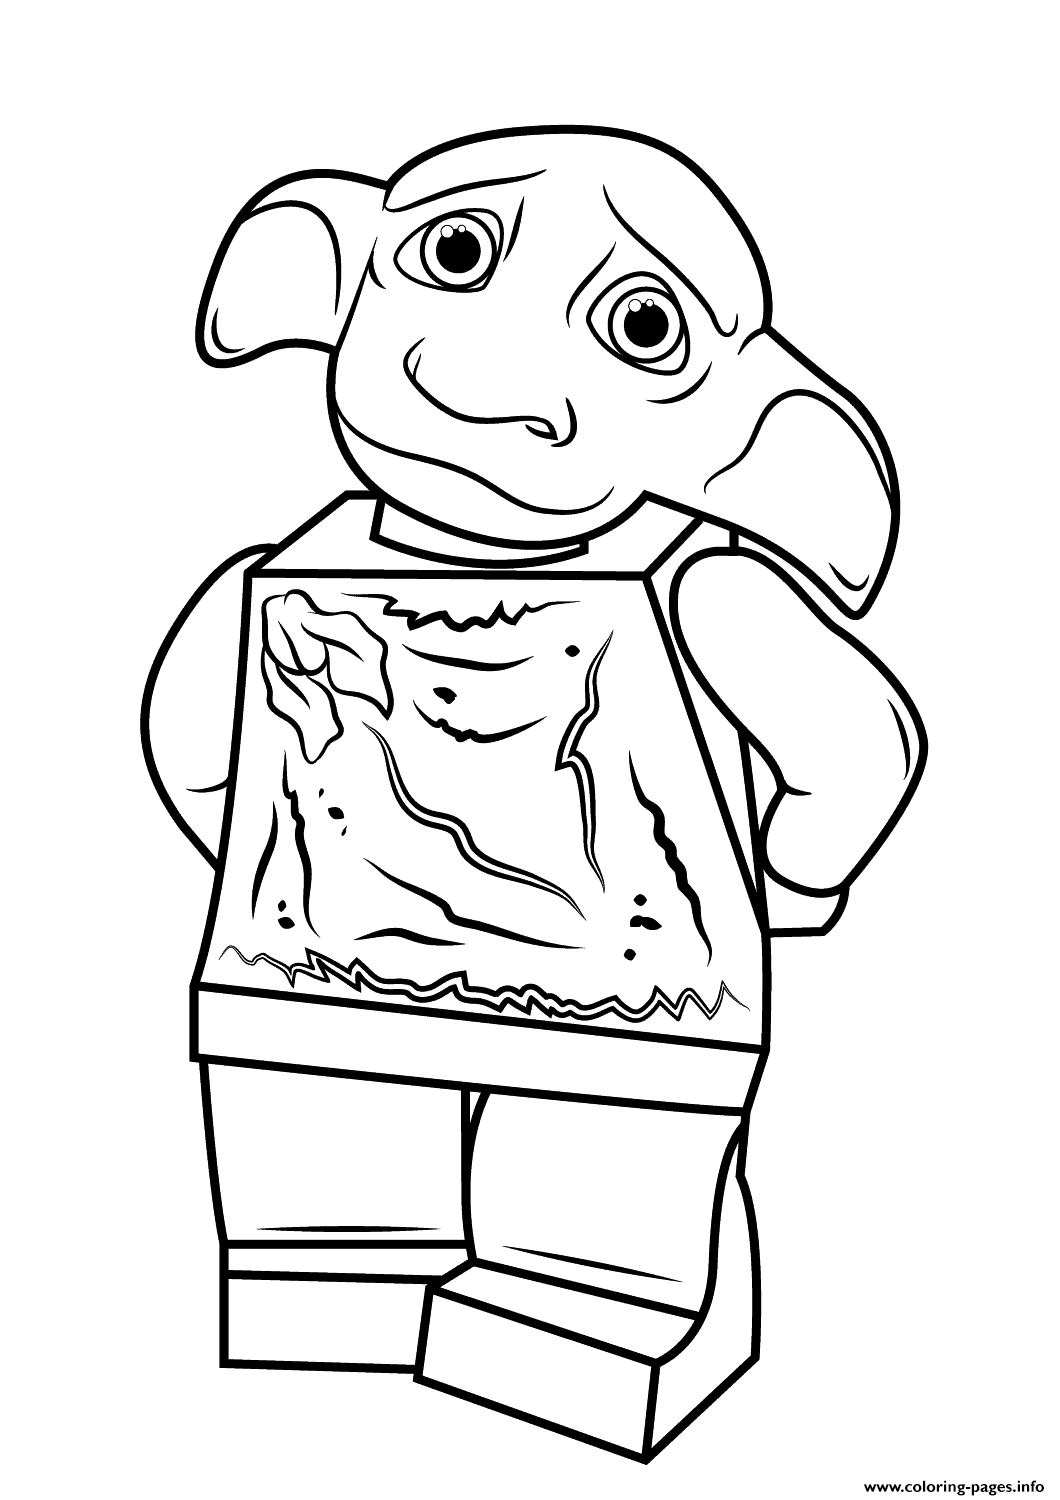 1060x1500 Lego Harry Potter Dobby Coloring Pages Printable